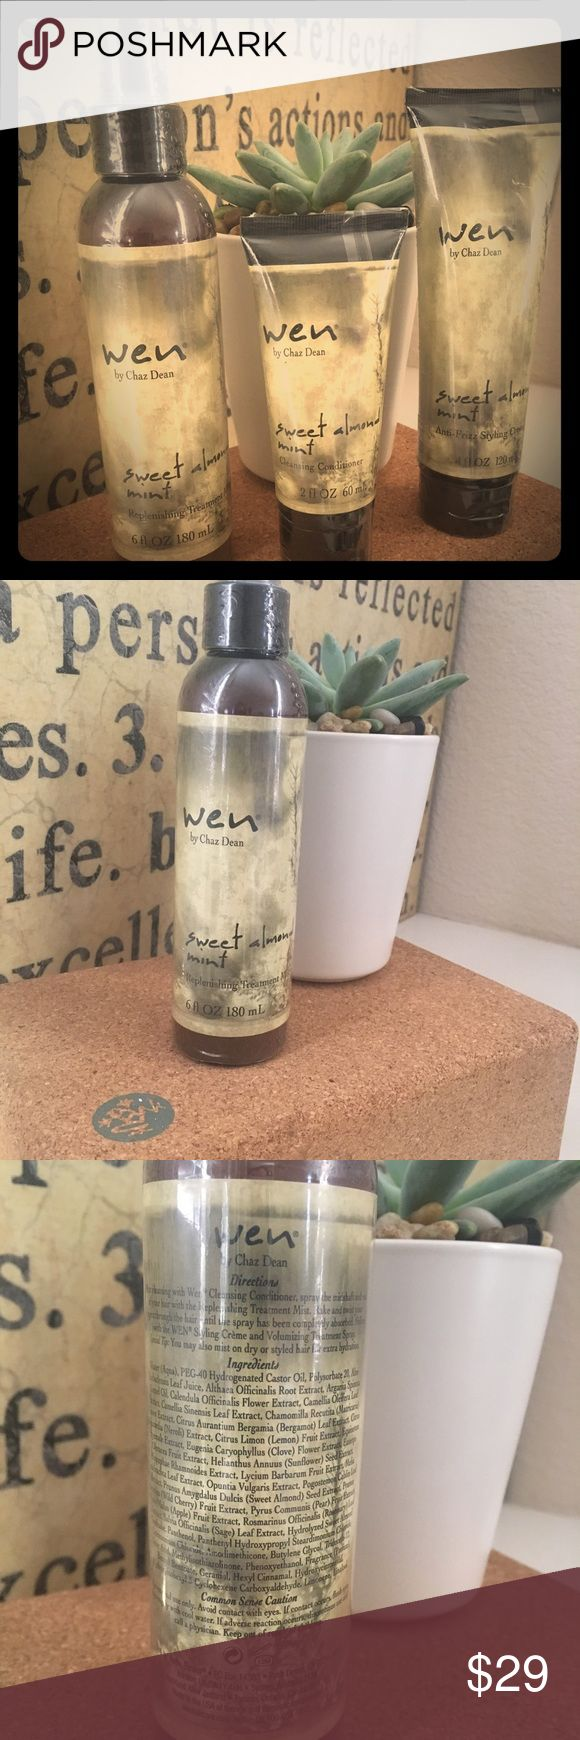 ✨Wen Hair Care Bundle New condition in sealed package. Sweet Almond Mint.6oz Replenishing Treatment Mist, 4 oz Anti-frizz Styling Creme and 2 oz Cleansing Conditioner. Accessories Hair Accessories